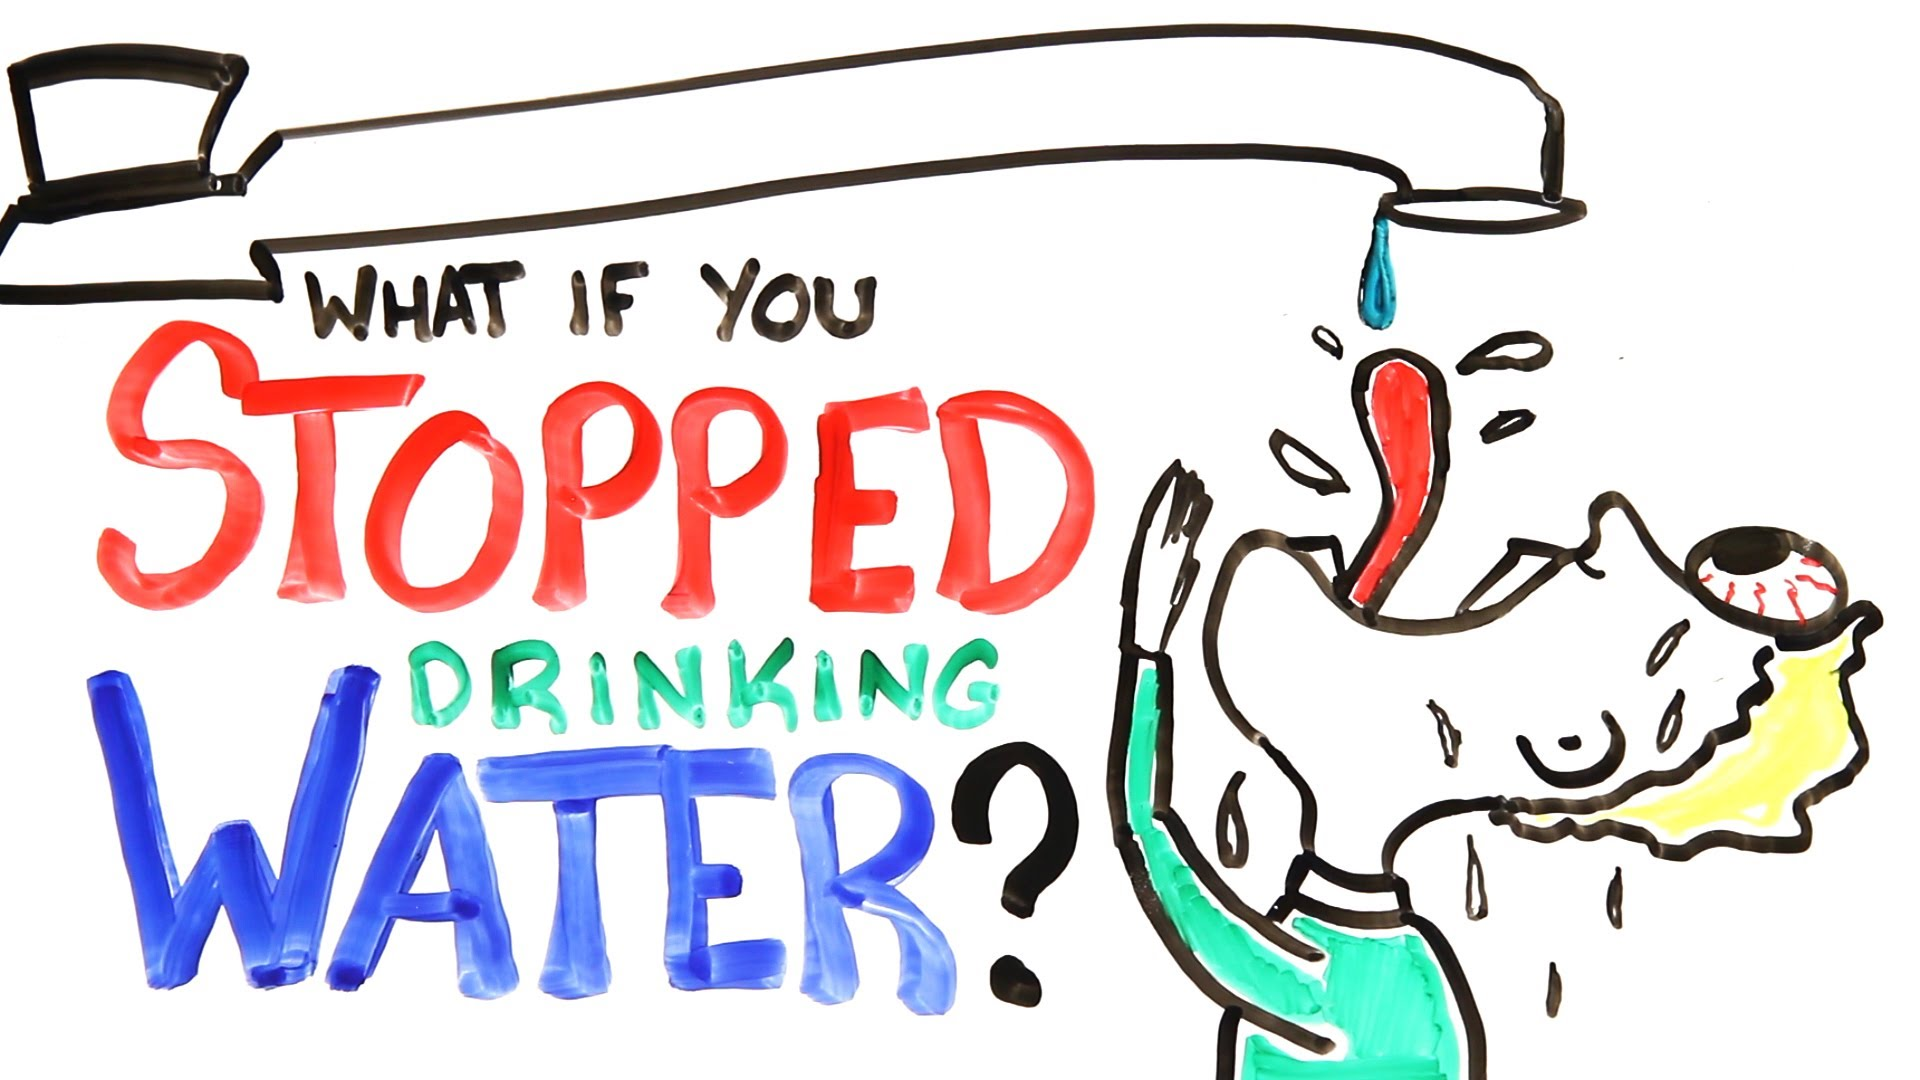 What Would Happen If You Stopped Drinking Water?